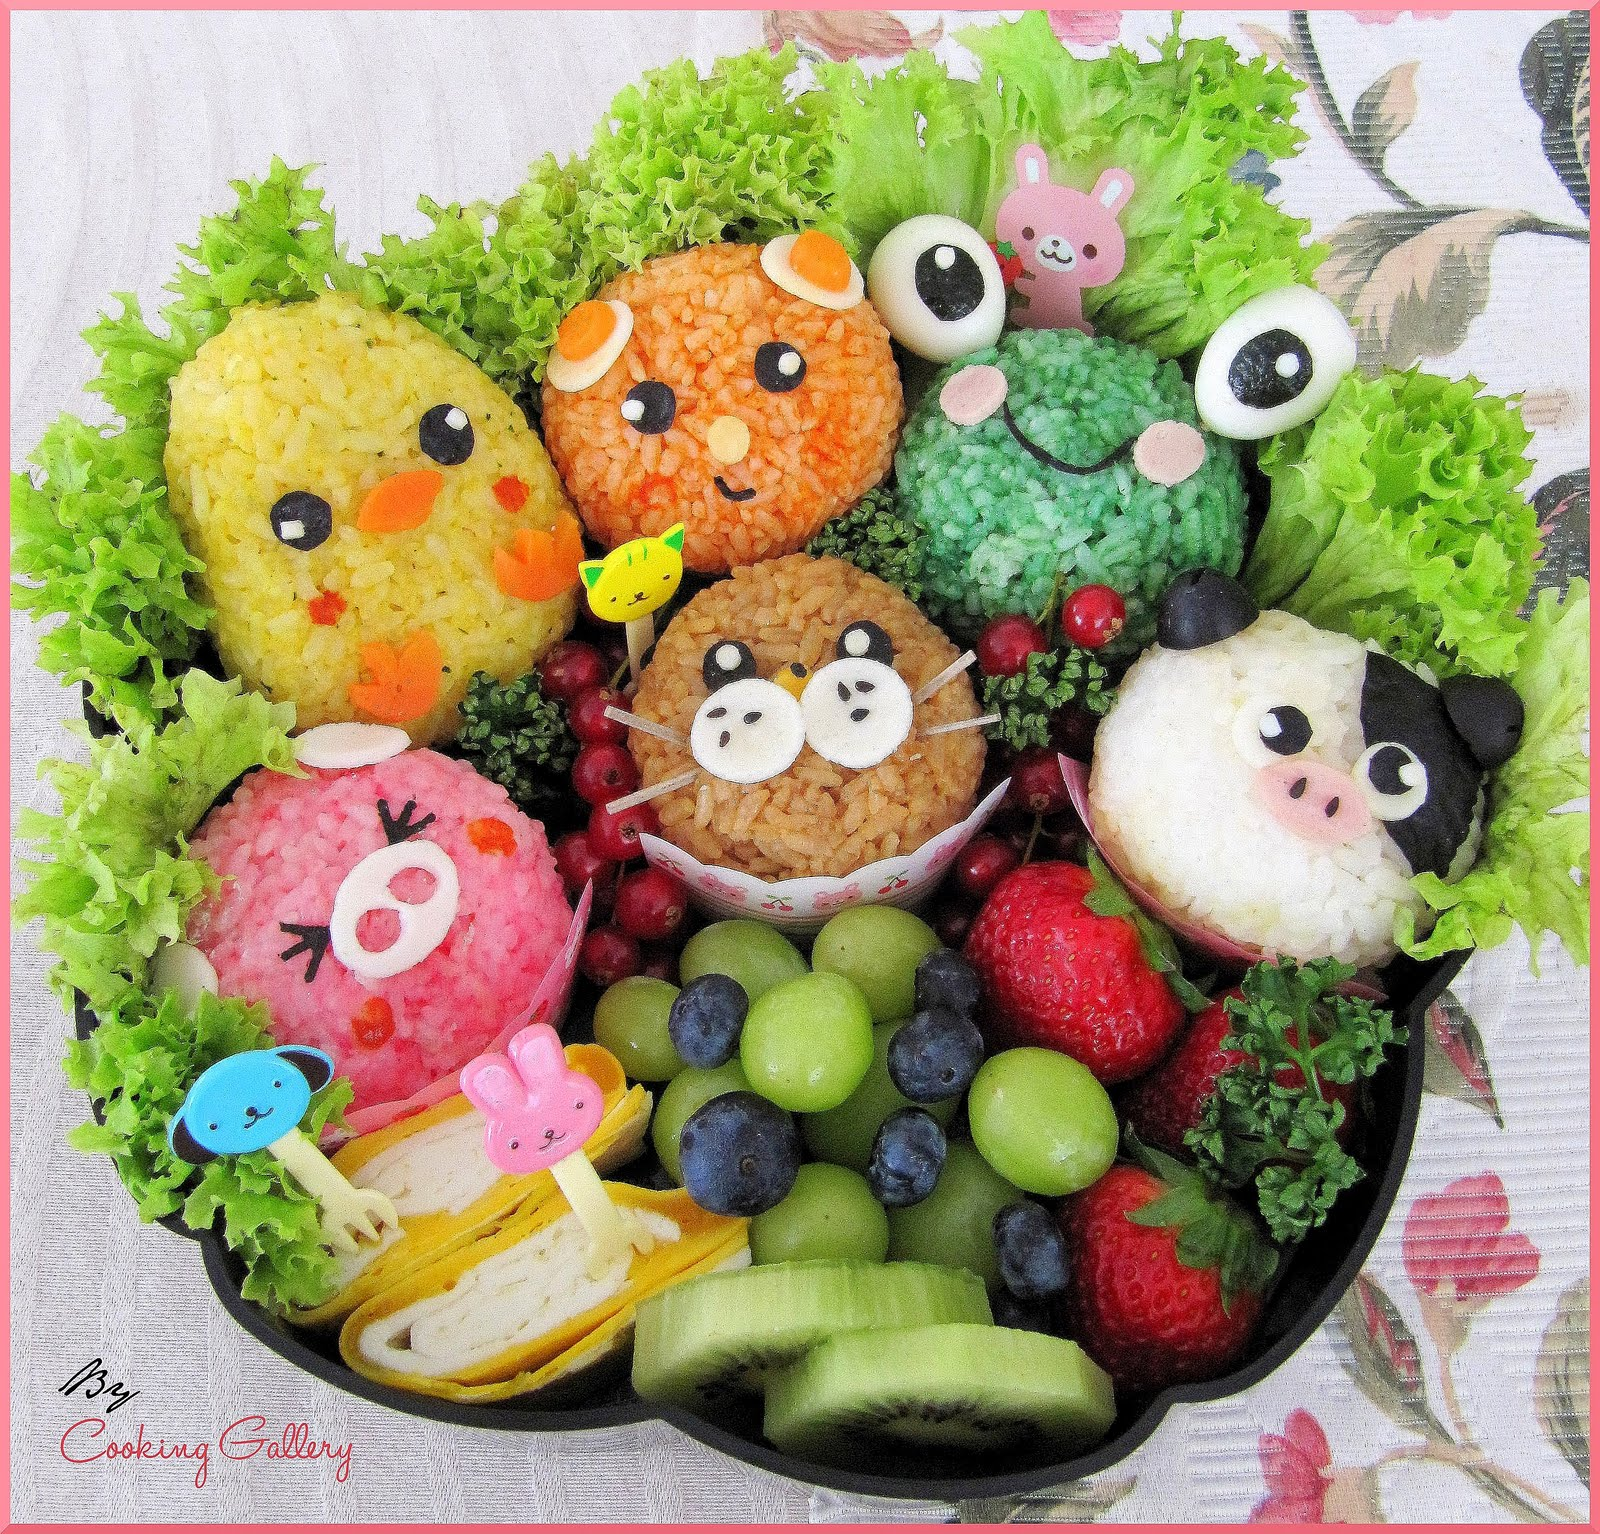 cute food japanese animals characters anime bento kawaii animal box boxes asian easy lunch eat too cuteness picnic cooking different